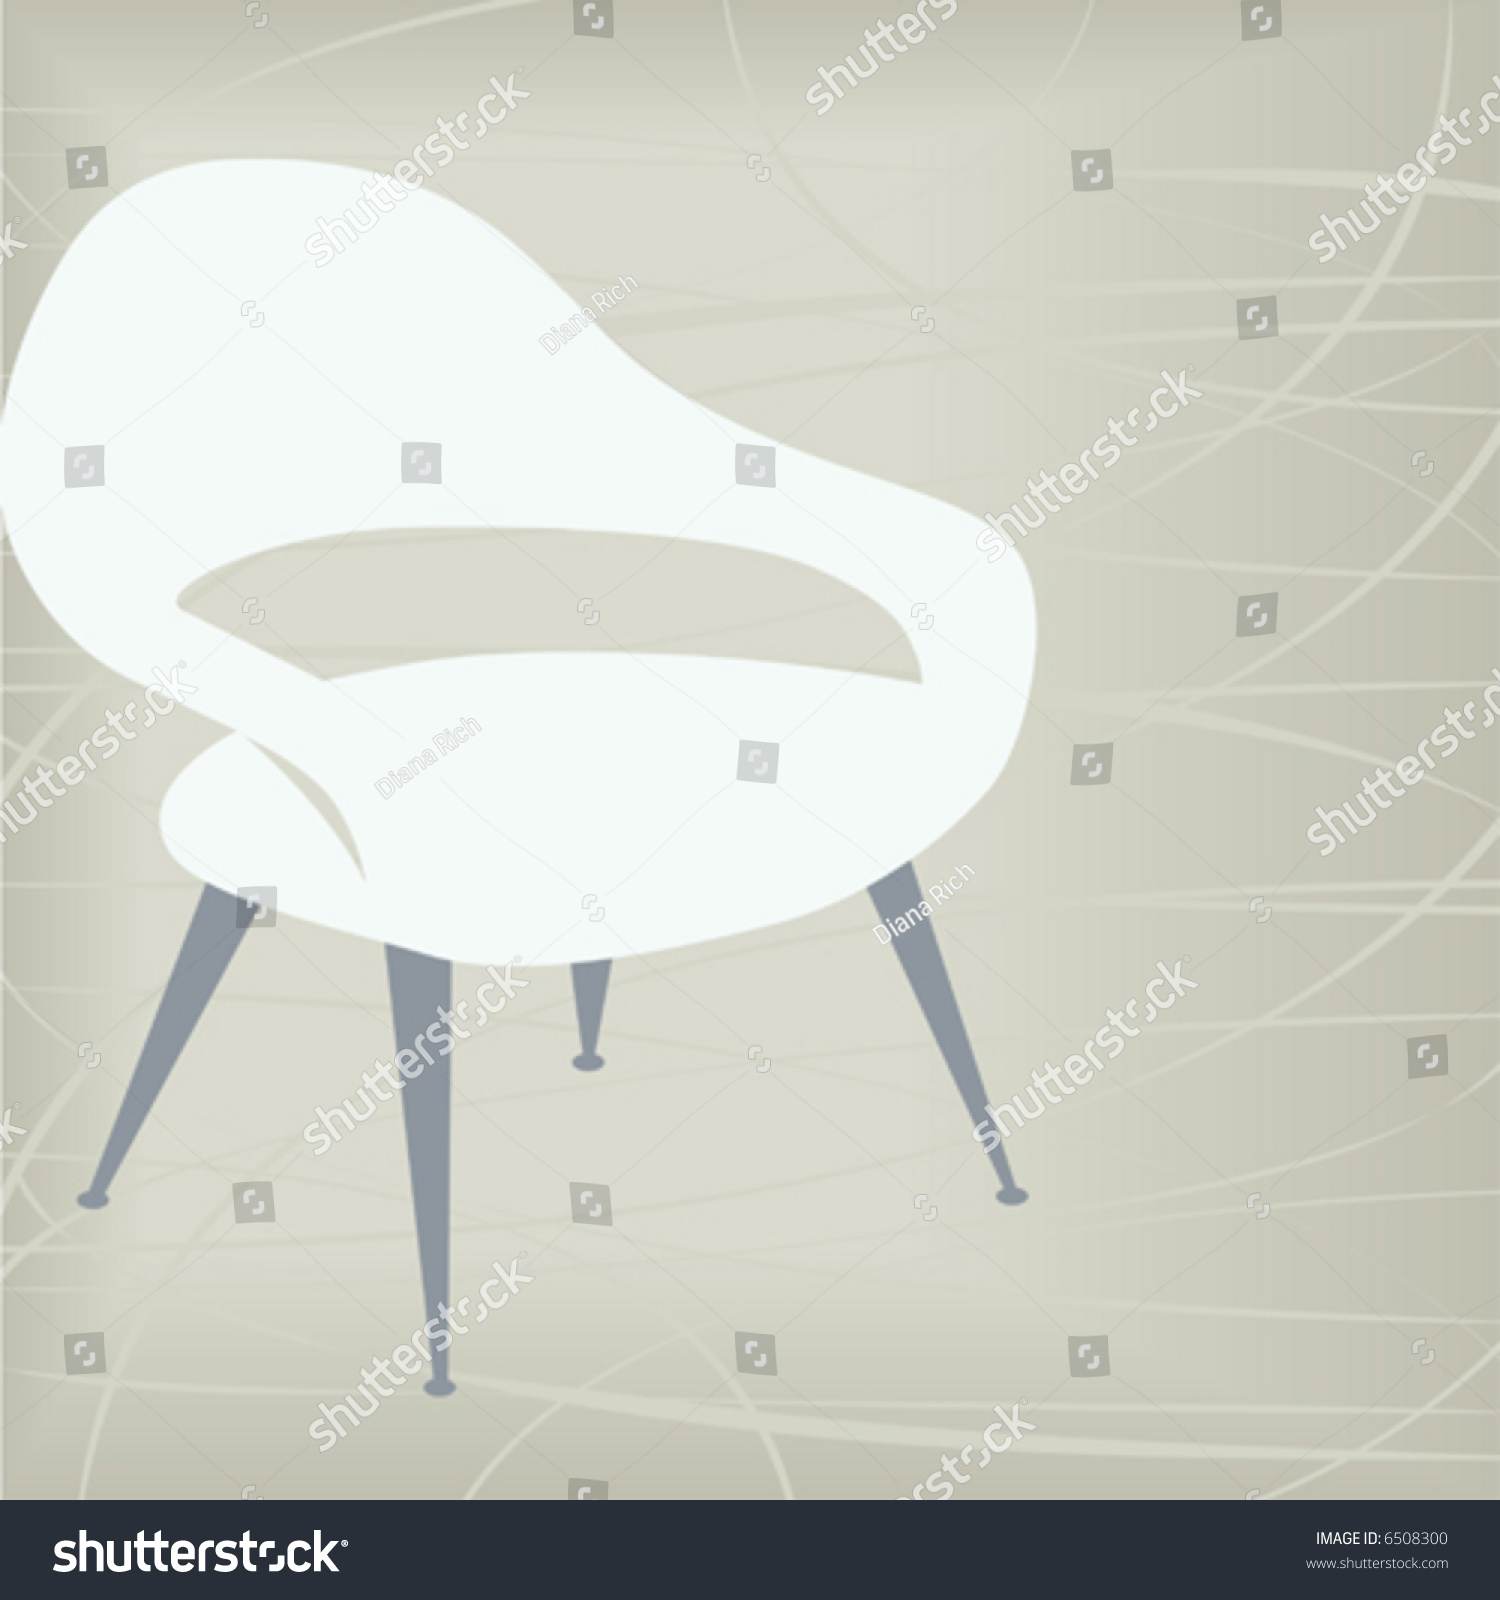 Stylish Vintage/retro Chair Design Element; Easy Edit Layered File Makes  Changing The